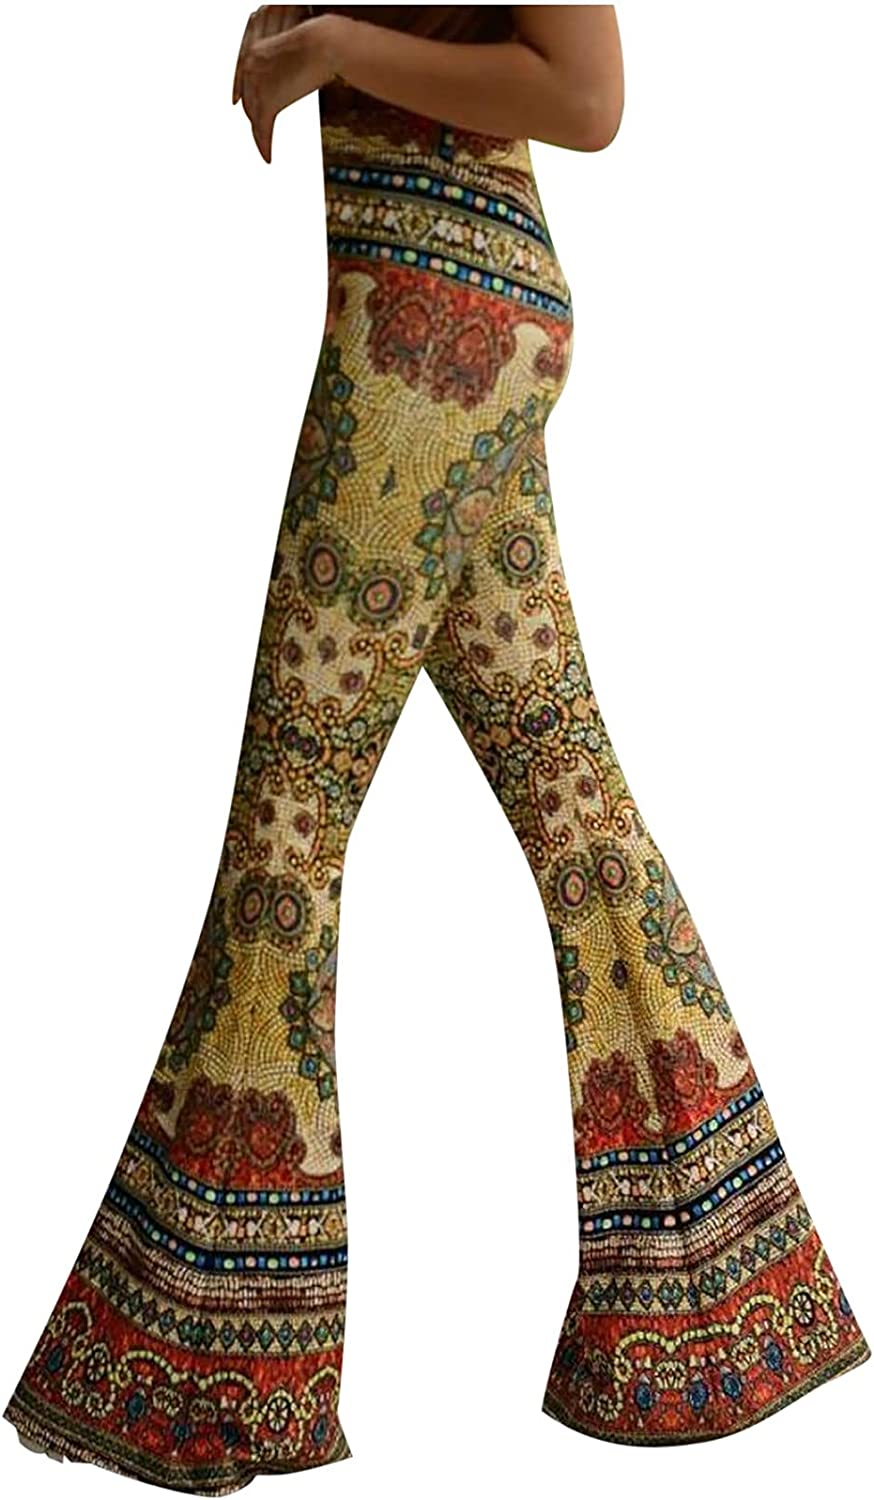 Women's Floral Print Stretch Bell Bottom Flare Tight-Fit Pants Trousers Summer Loose Retro Yoga Slimsuit